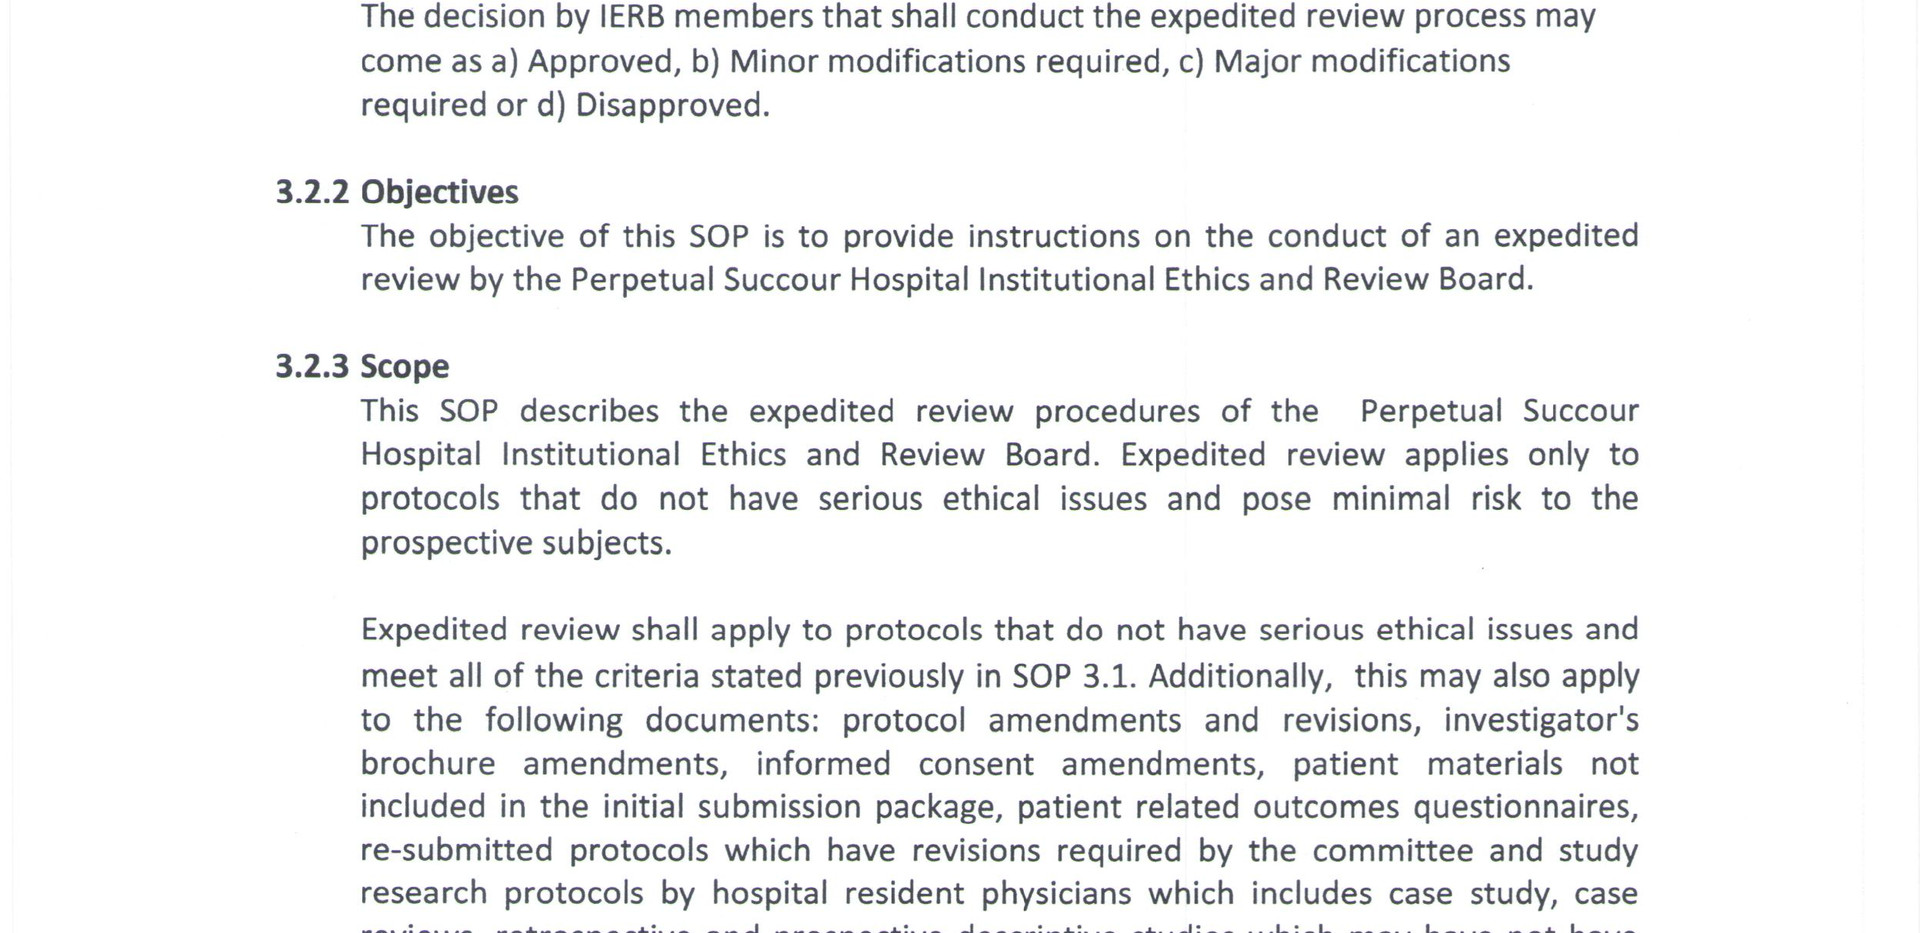 Conduct of Expedited Review 1.jpg